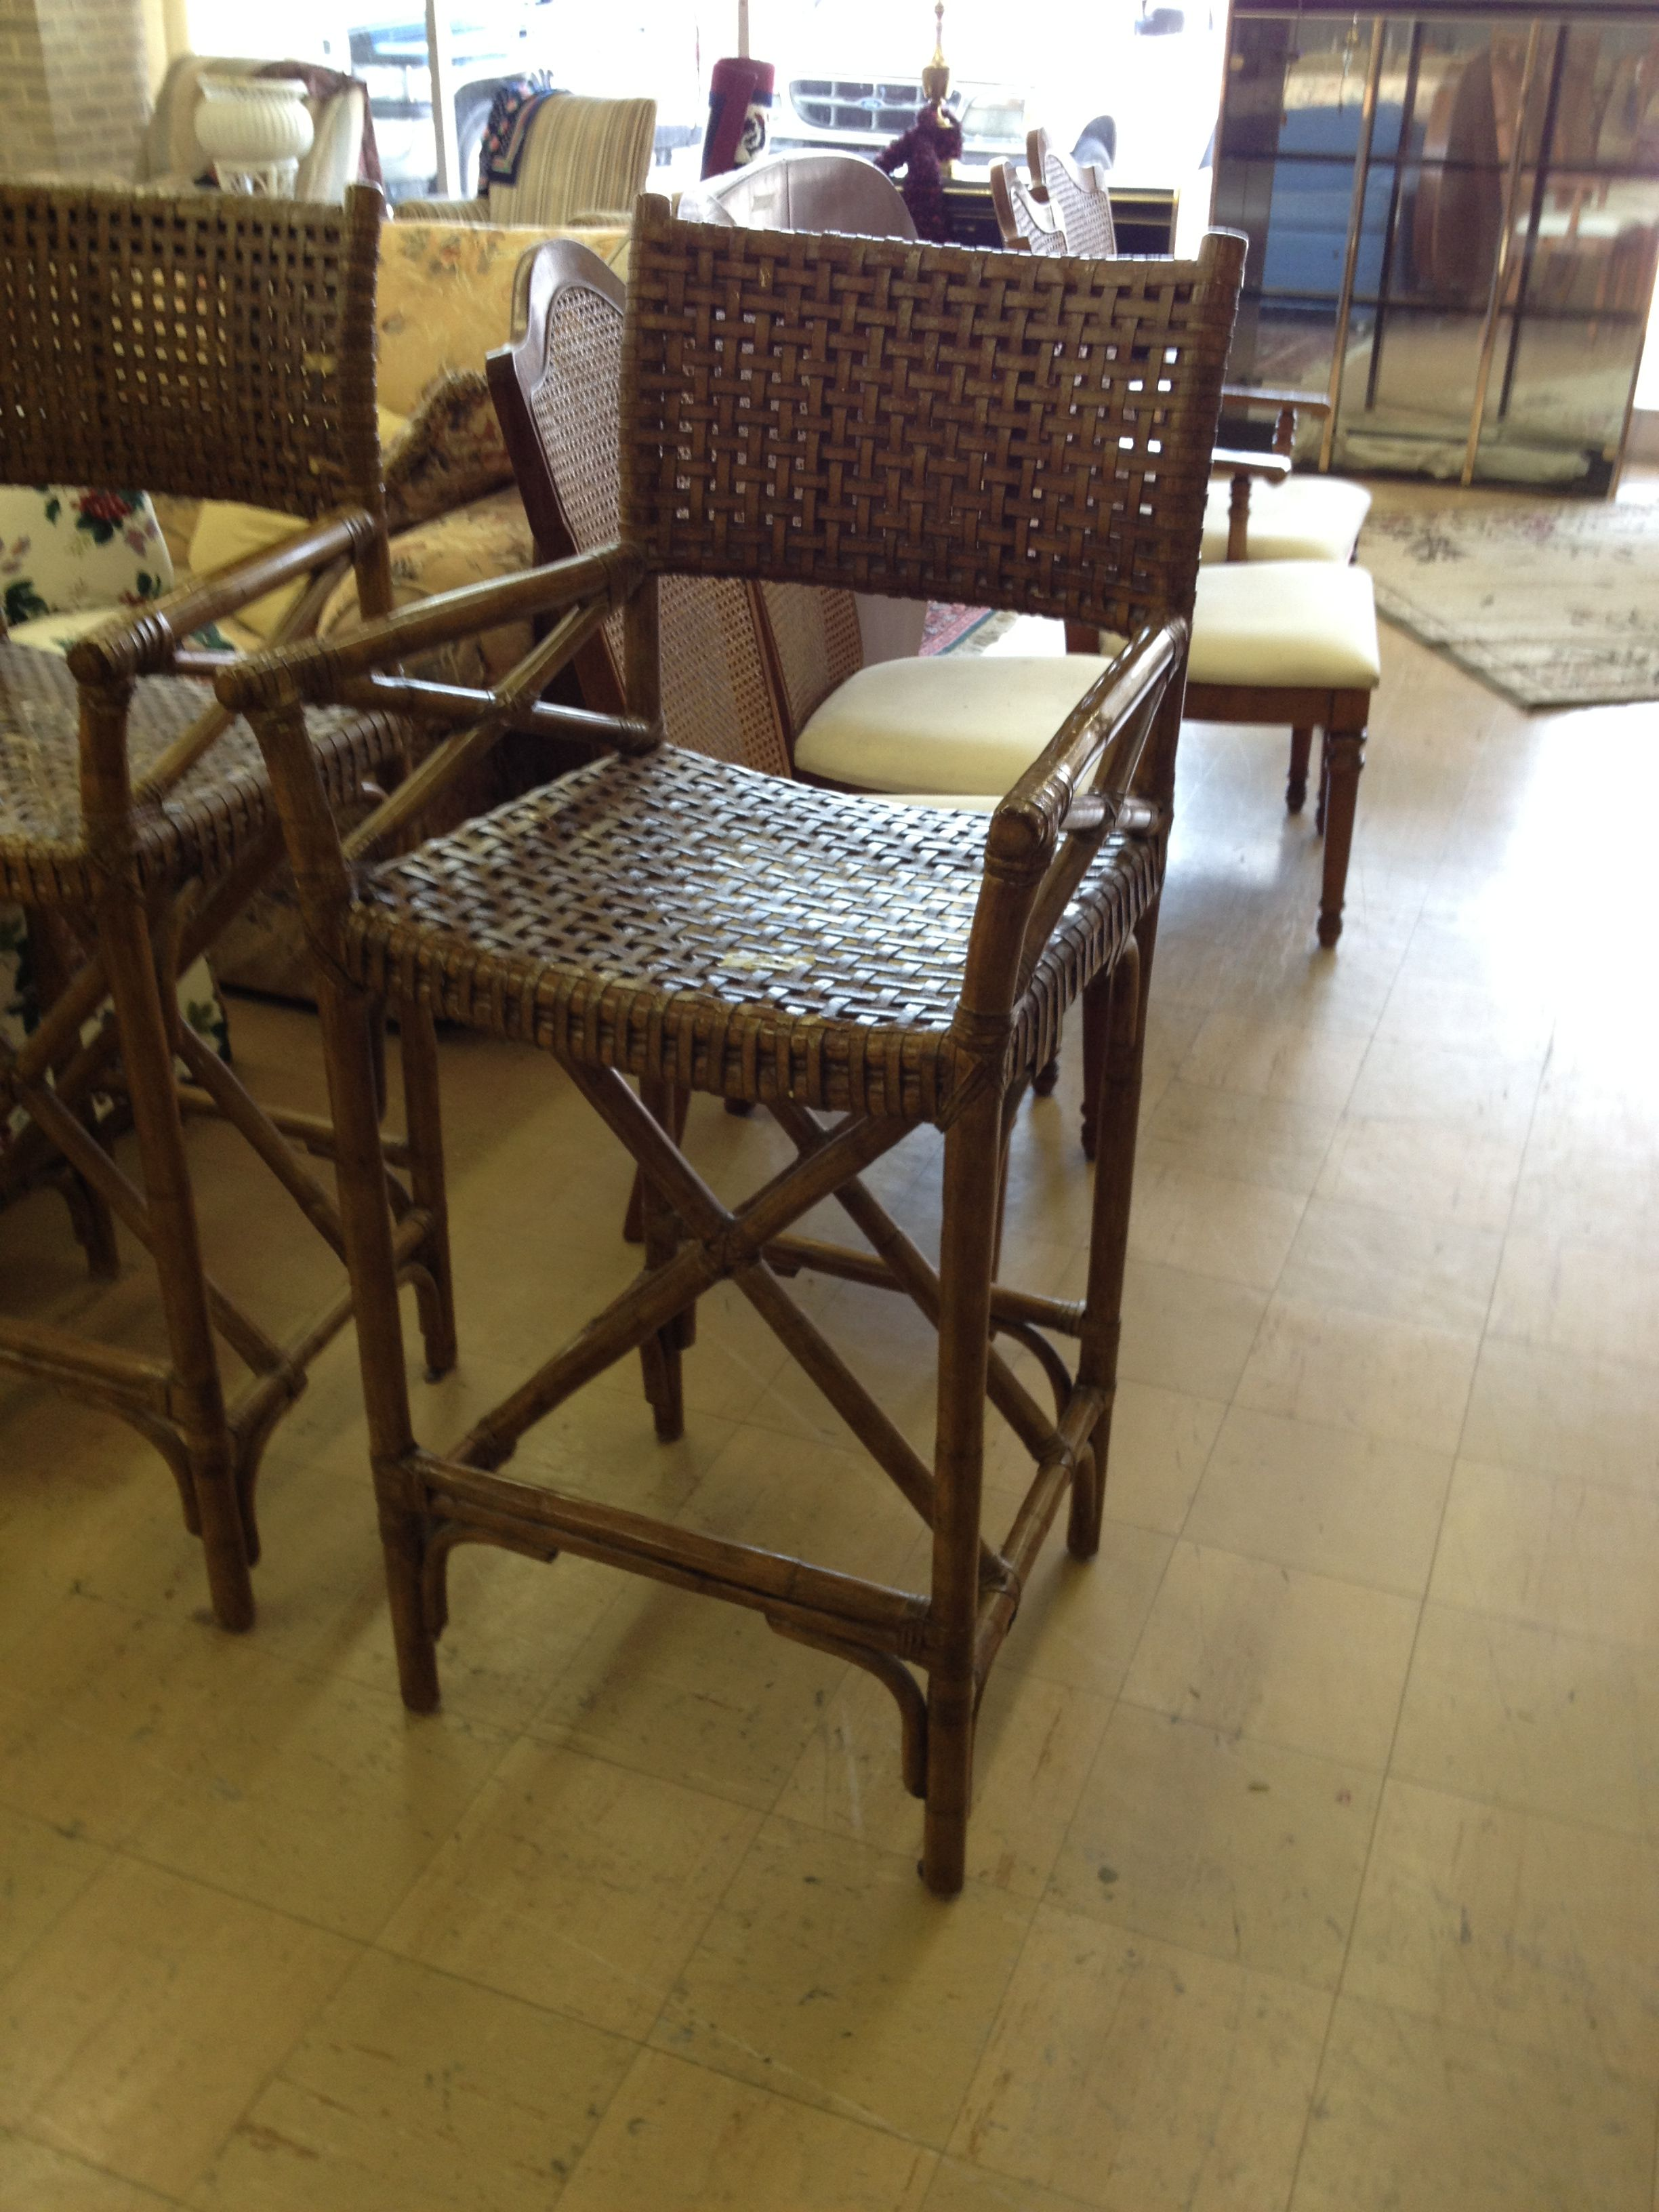 bamboo bar chairs 15 each i brake for yard sales thrift stores